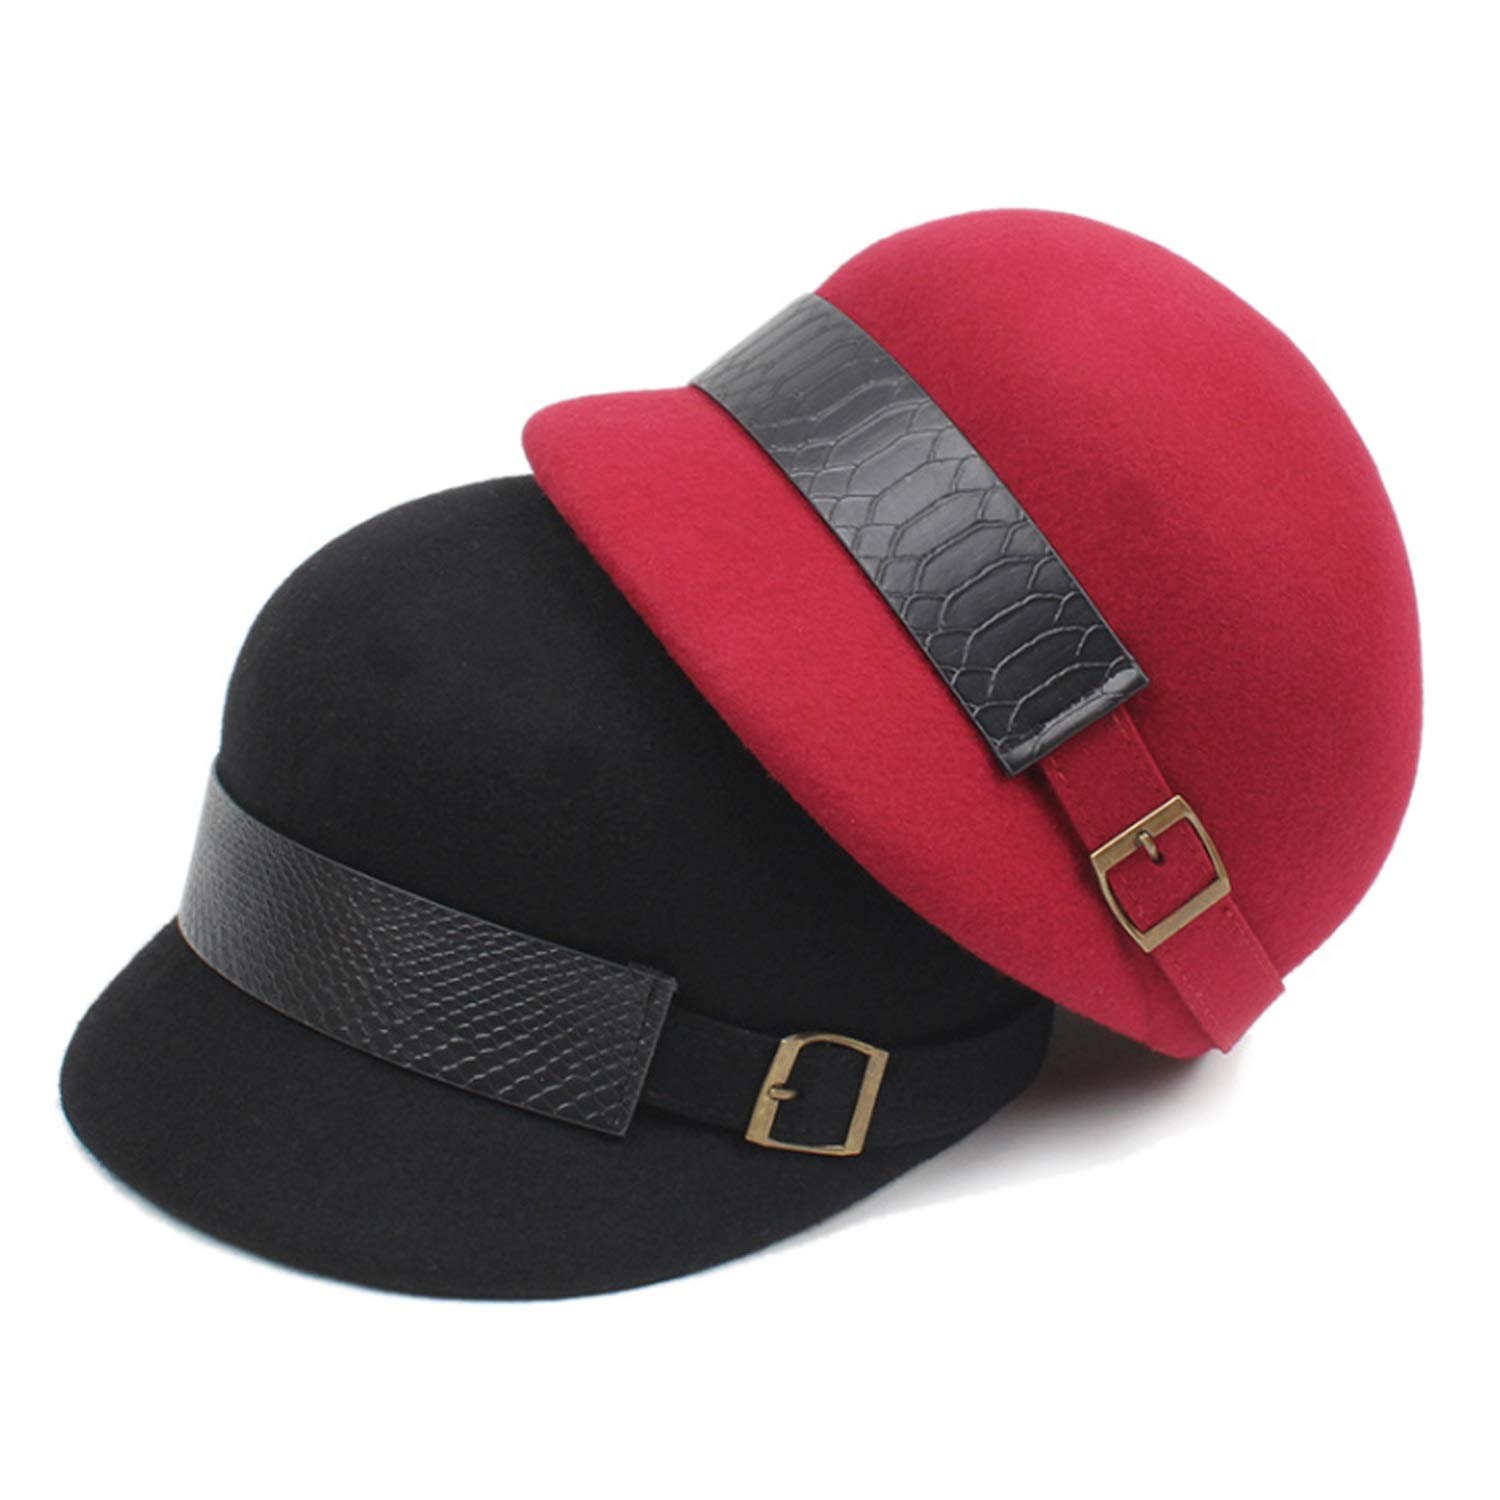 Sombrero Invierno Correa Ajustable Gorra Retro Gorro Lana Negro, Bellet (Color : Negro, Lana Size : Adjustable) 786e43